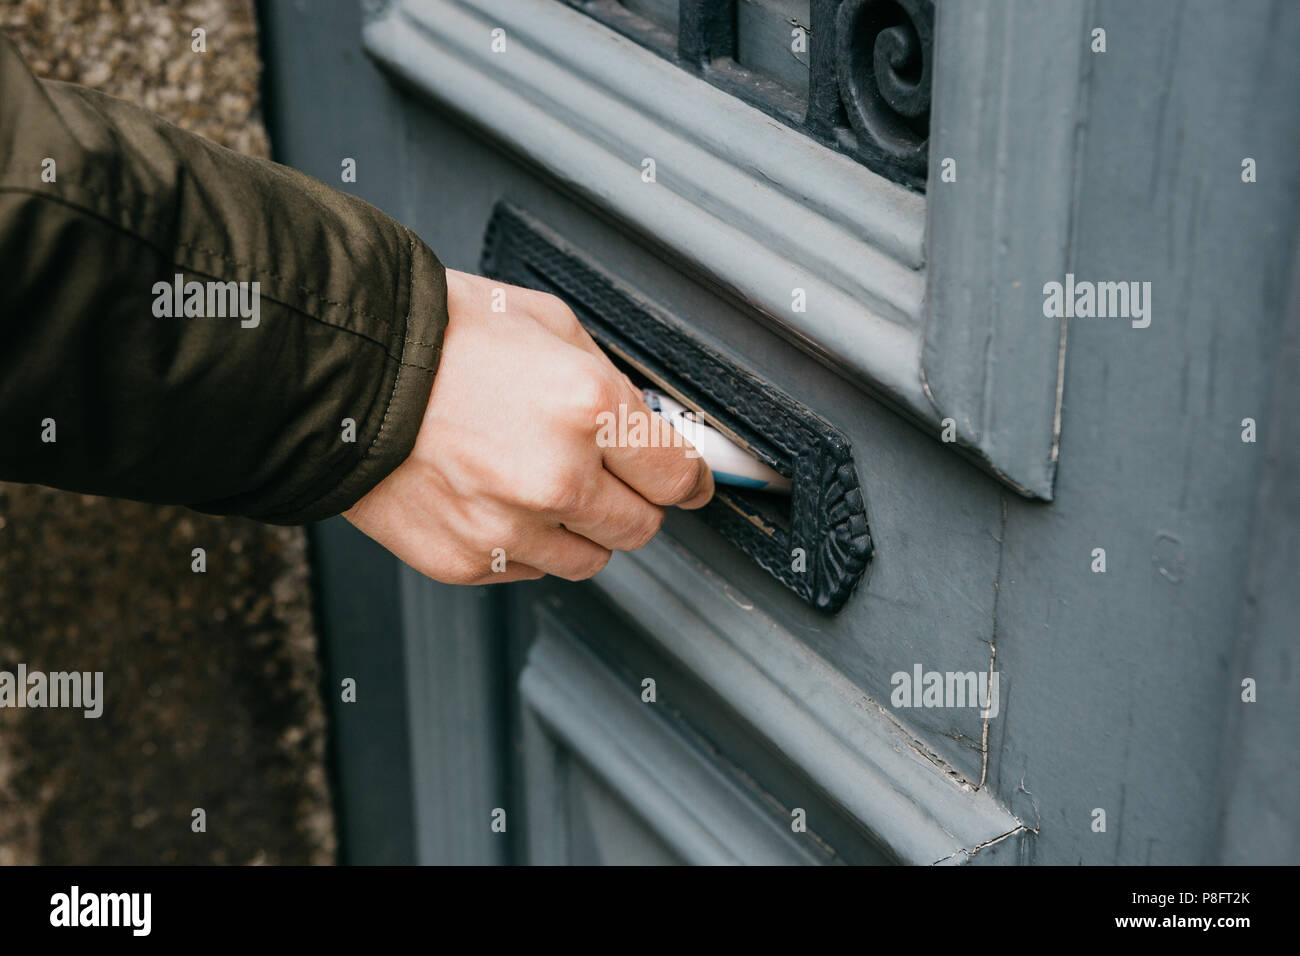 The postman puts a letter or newspaper or magazine in the mailbox at the door of a residential building or a person puts a brochure with advertising.  - Stock Image